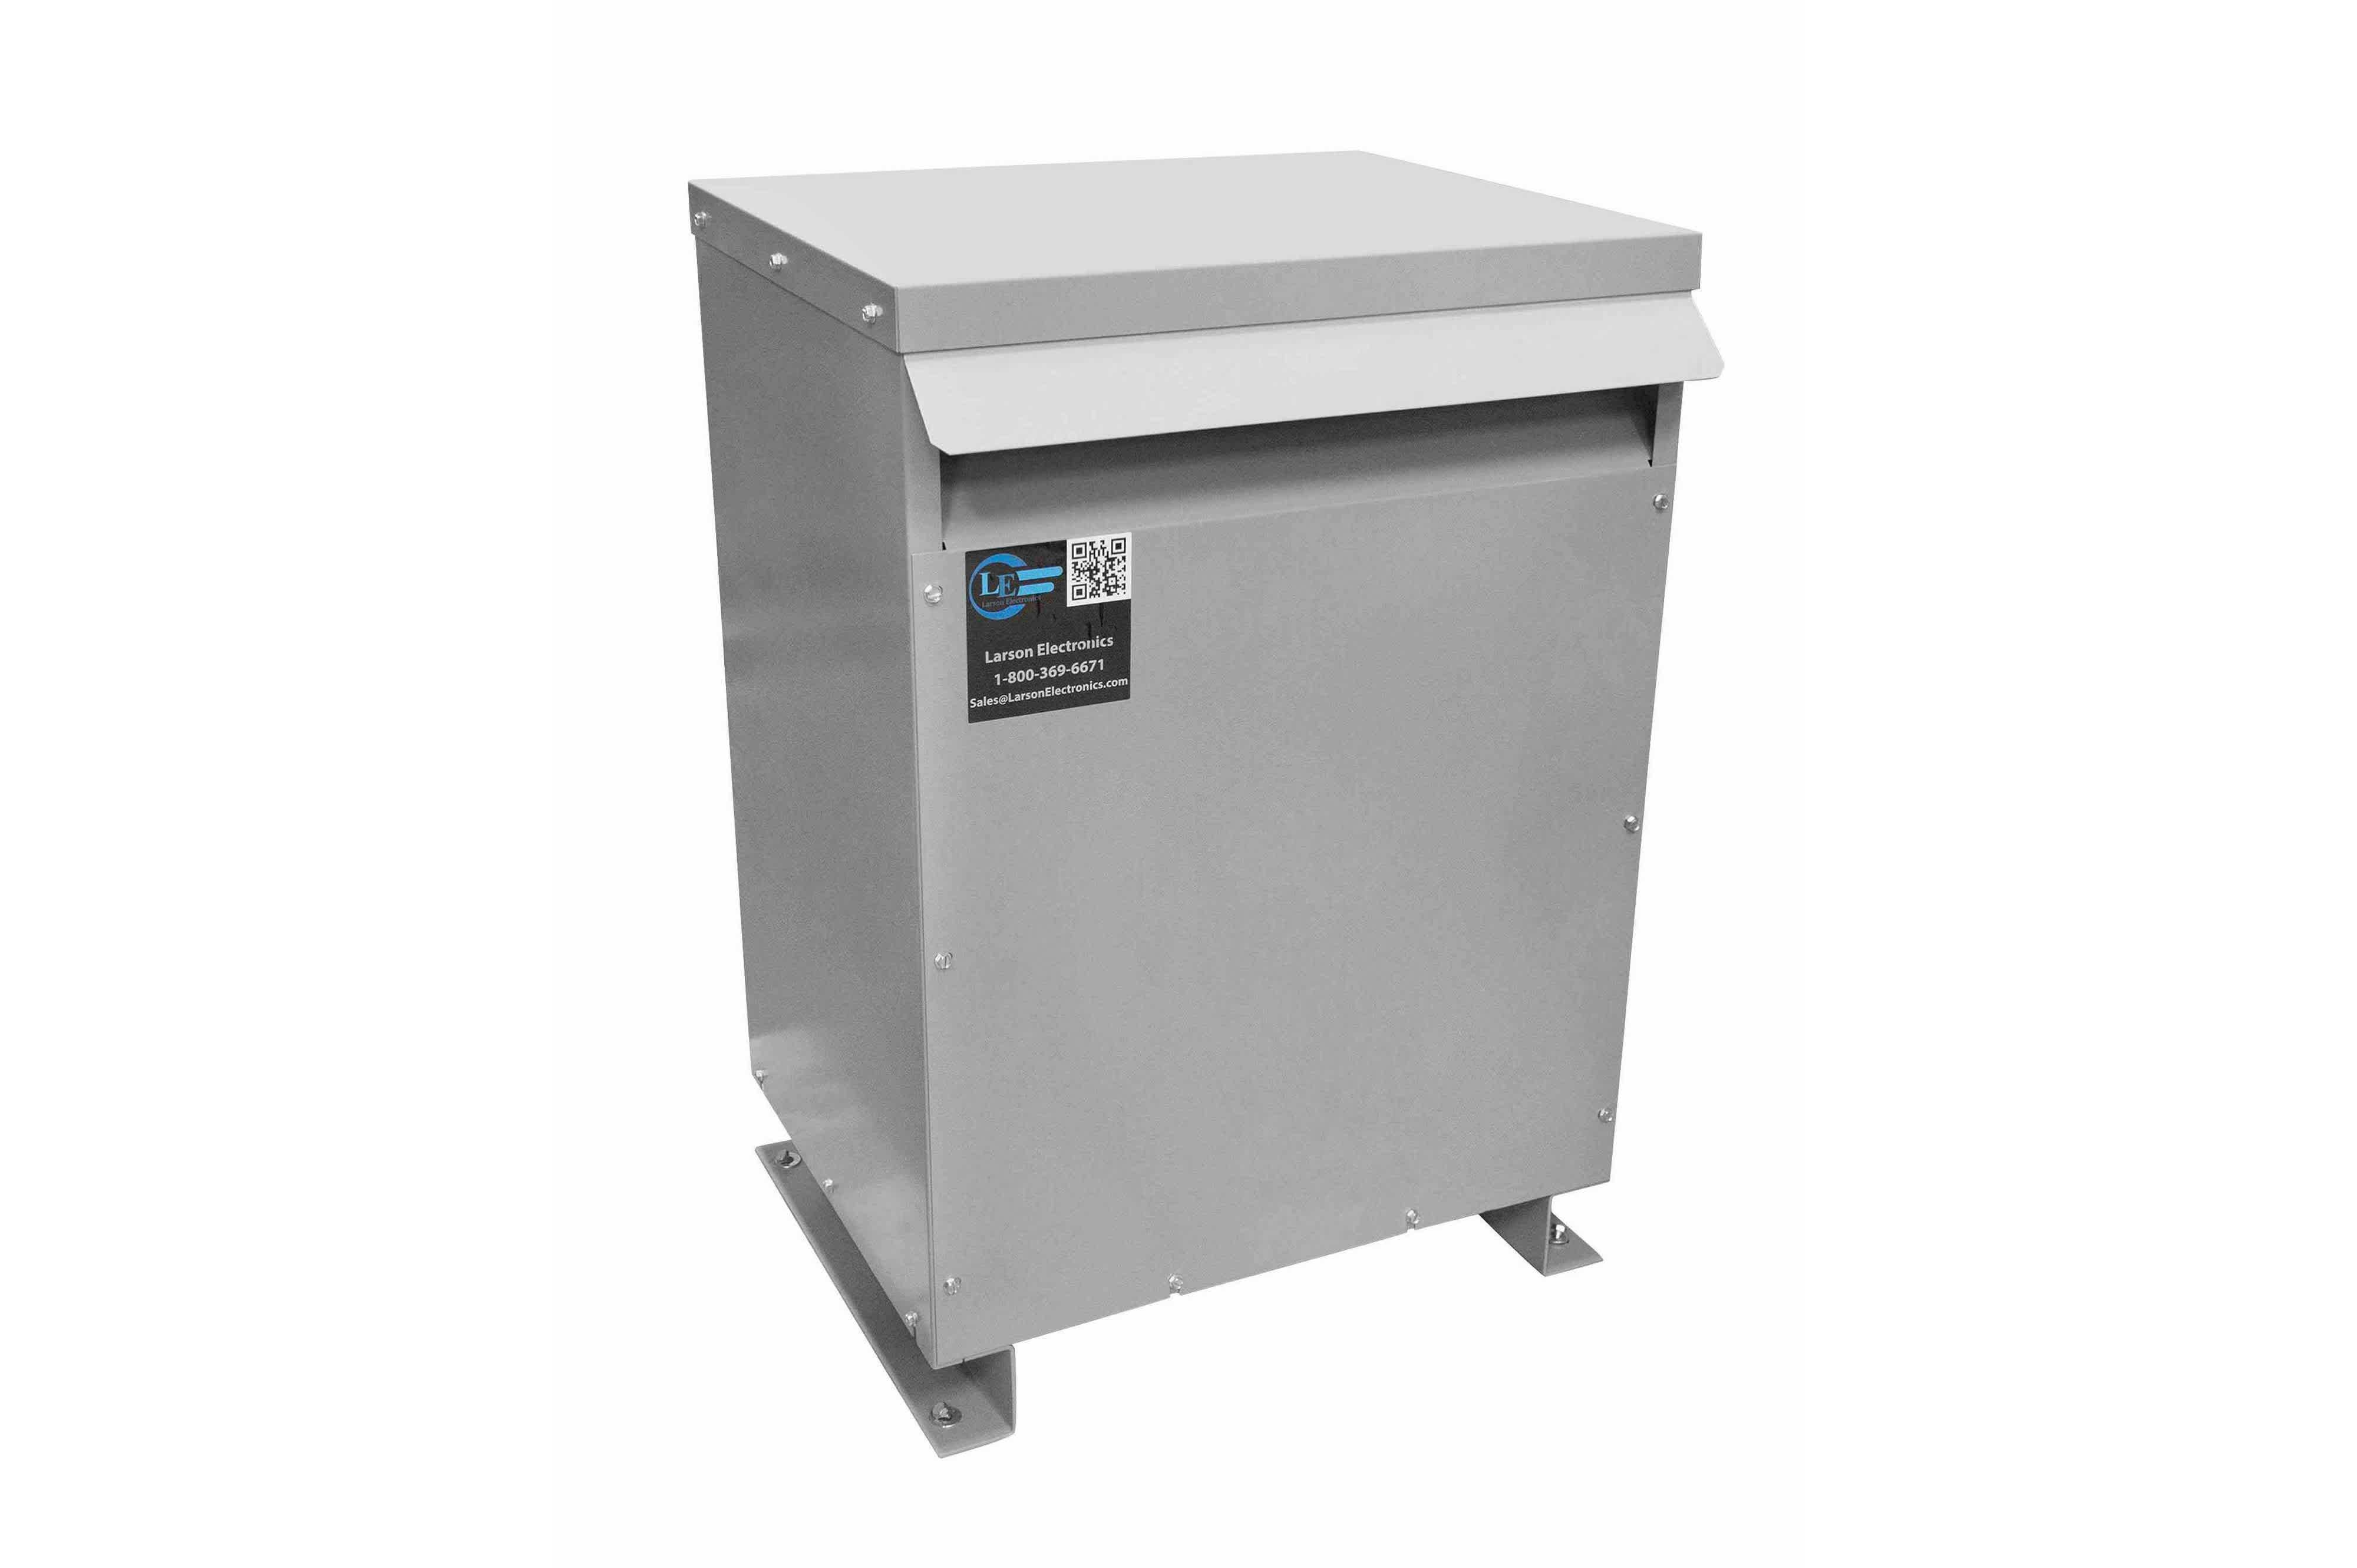 80 kVA 3PH Isolation Transformer, 480V Wye Primary, 400V Delta Secondary, N3R, Ventilated, 60 Hz